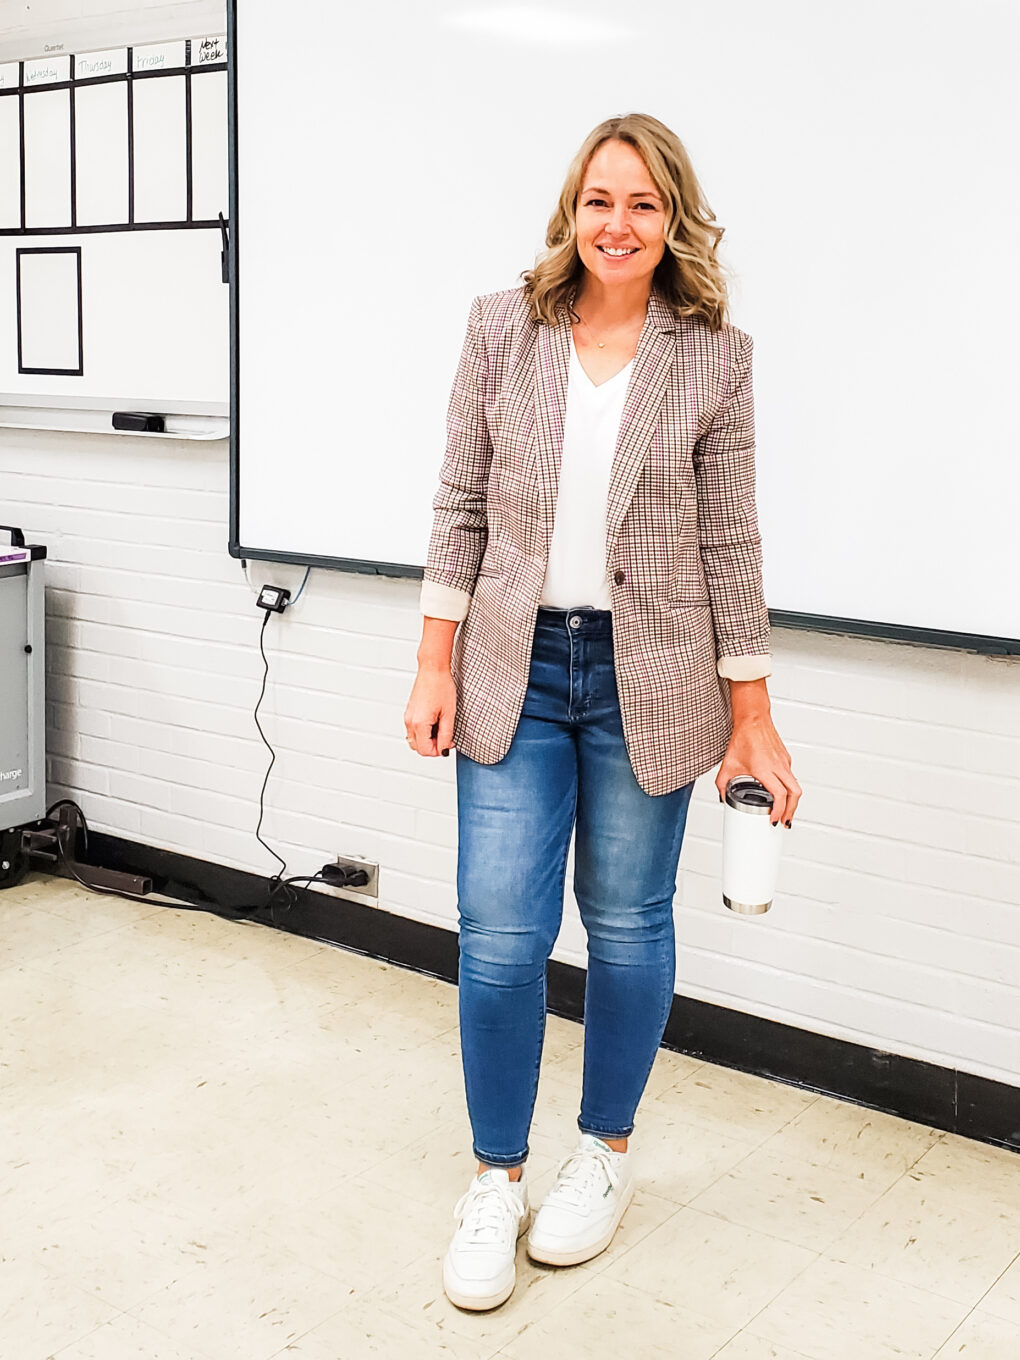 Teacher Outfit with plaid blazer, white tee, jeans, and white sneakers